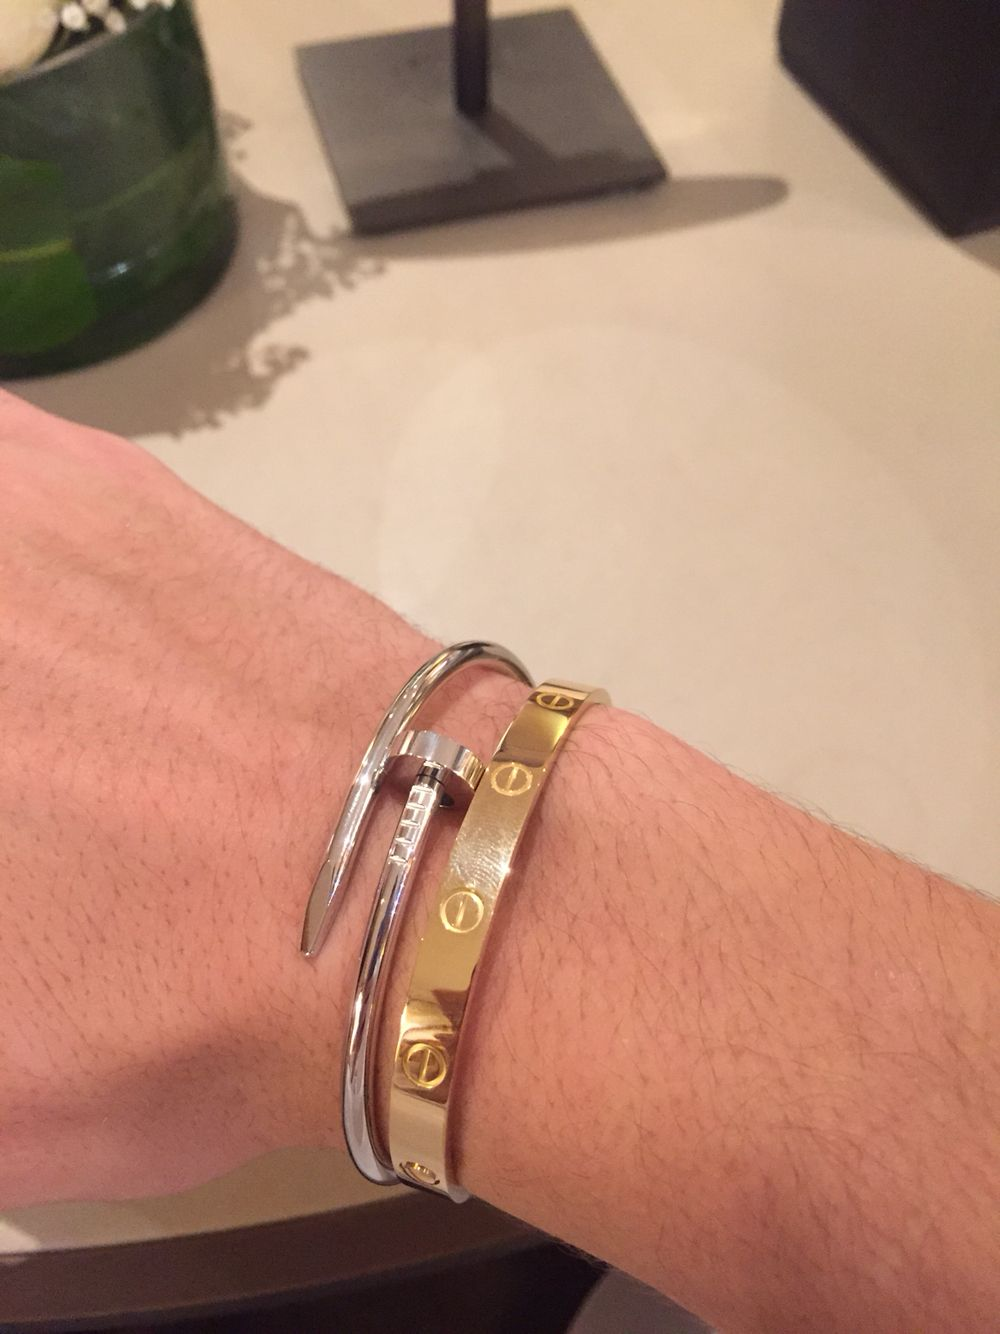 bfb8495870505 Cartier Love and just un clou if put in this order on a guys wrist ...